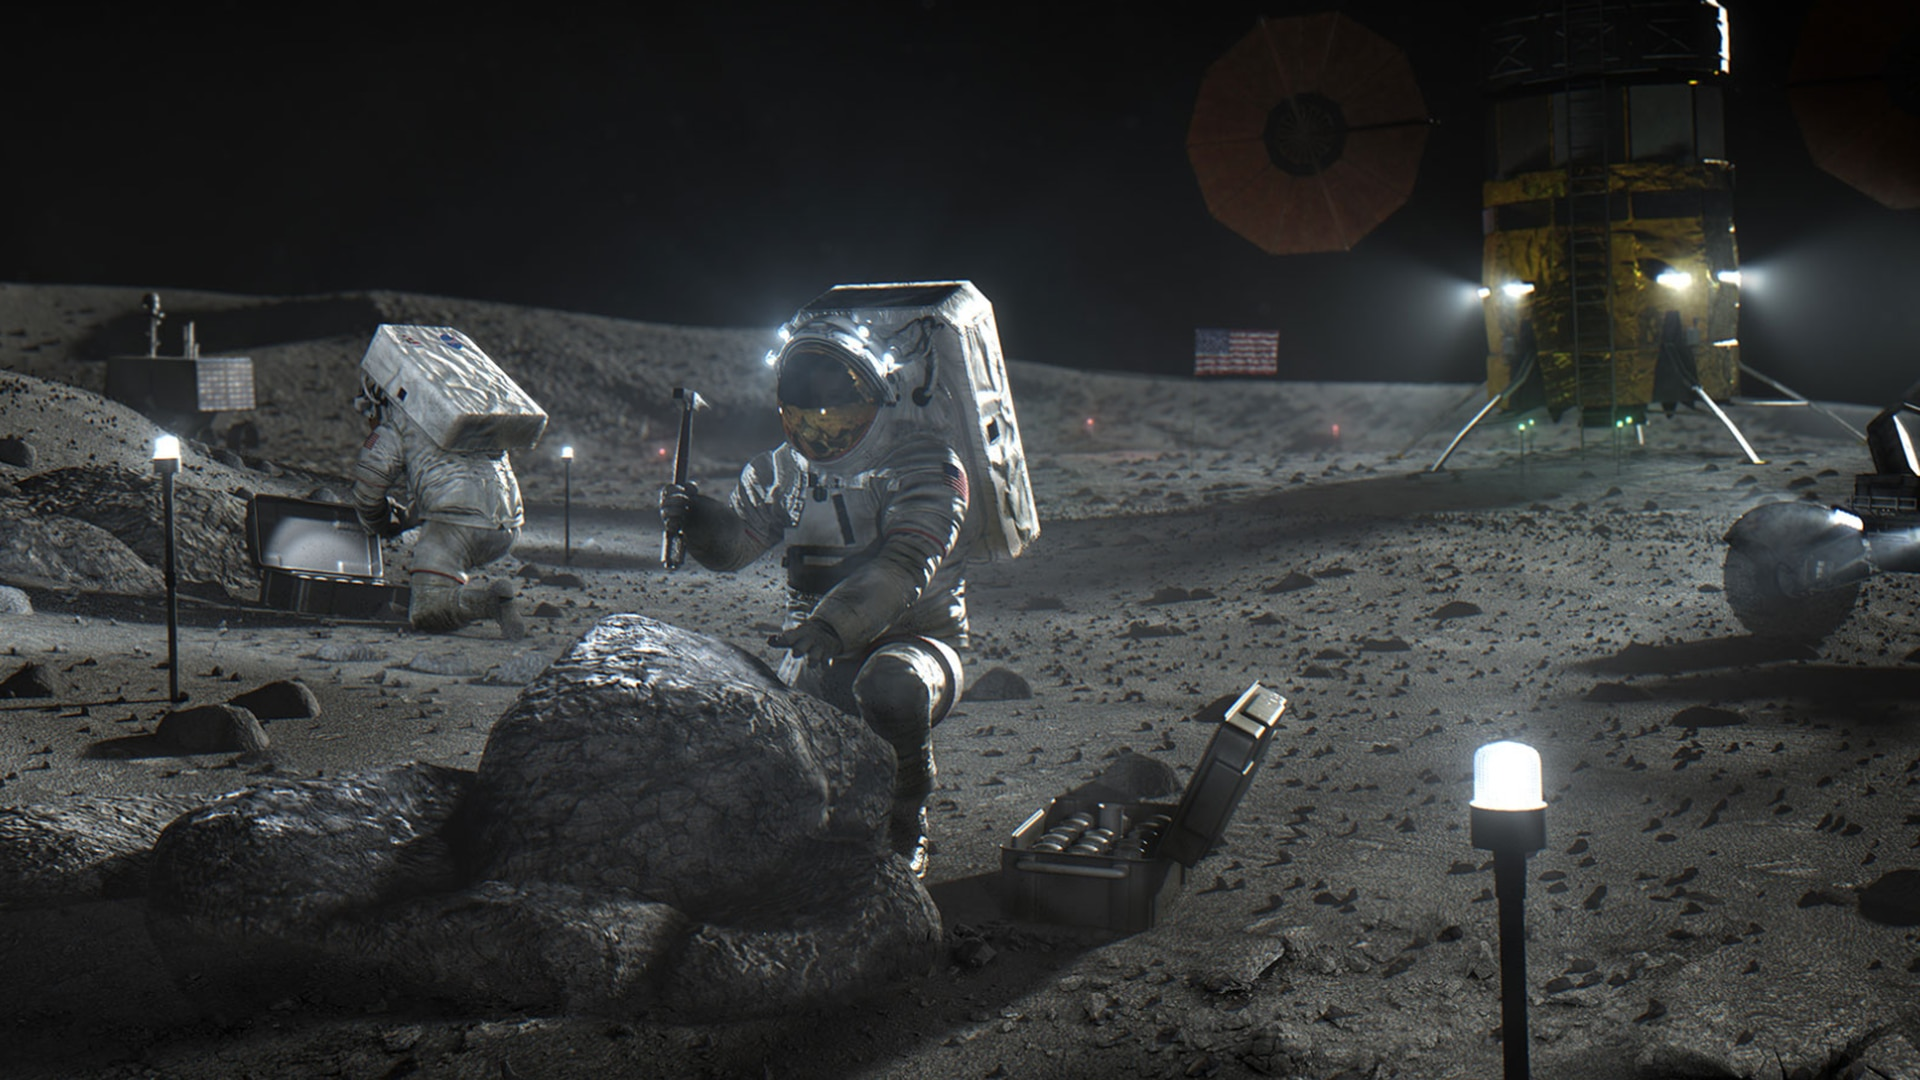 NASA's Artemis program plans to have astronauts travelling to the moon for extended stays by 2024. (NASA)